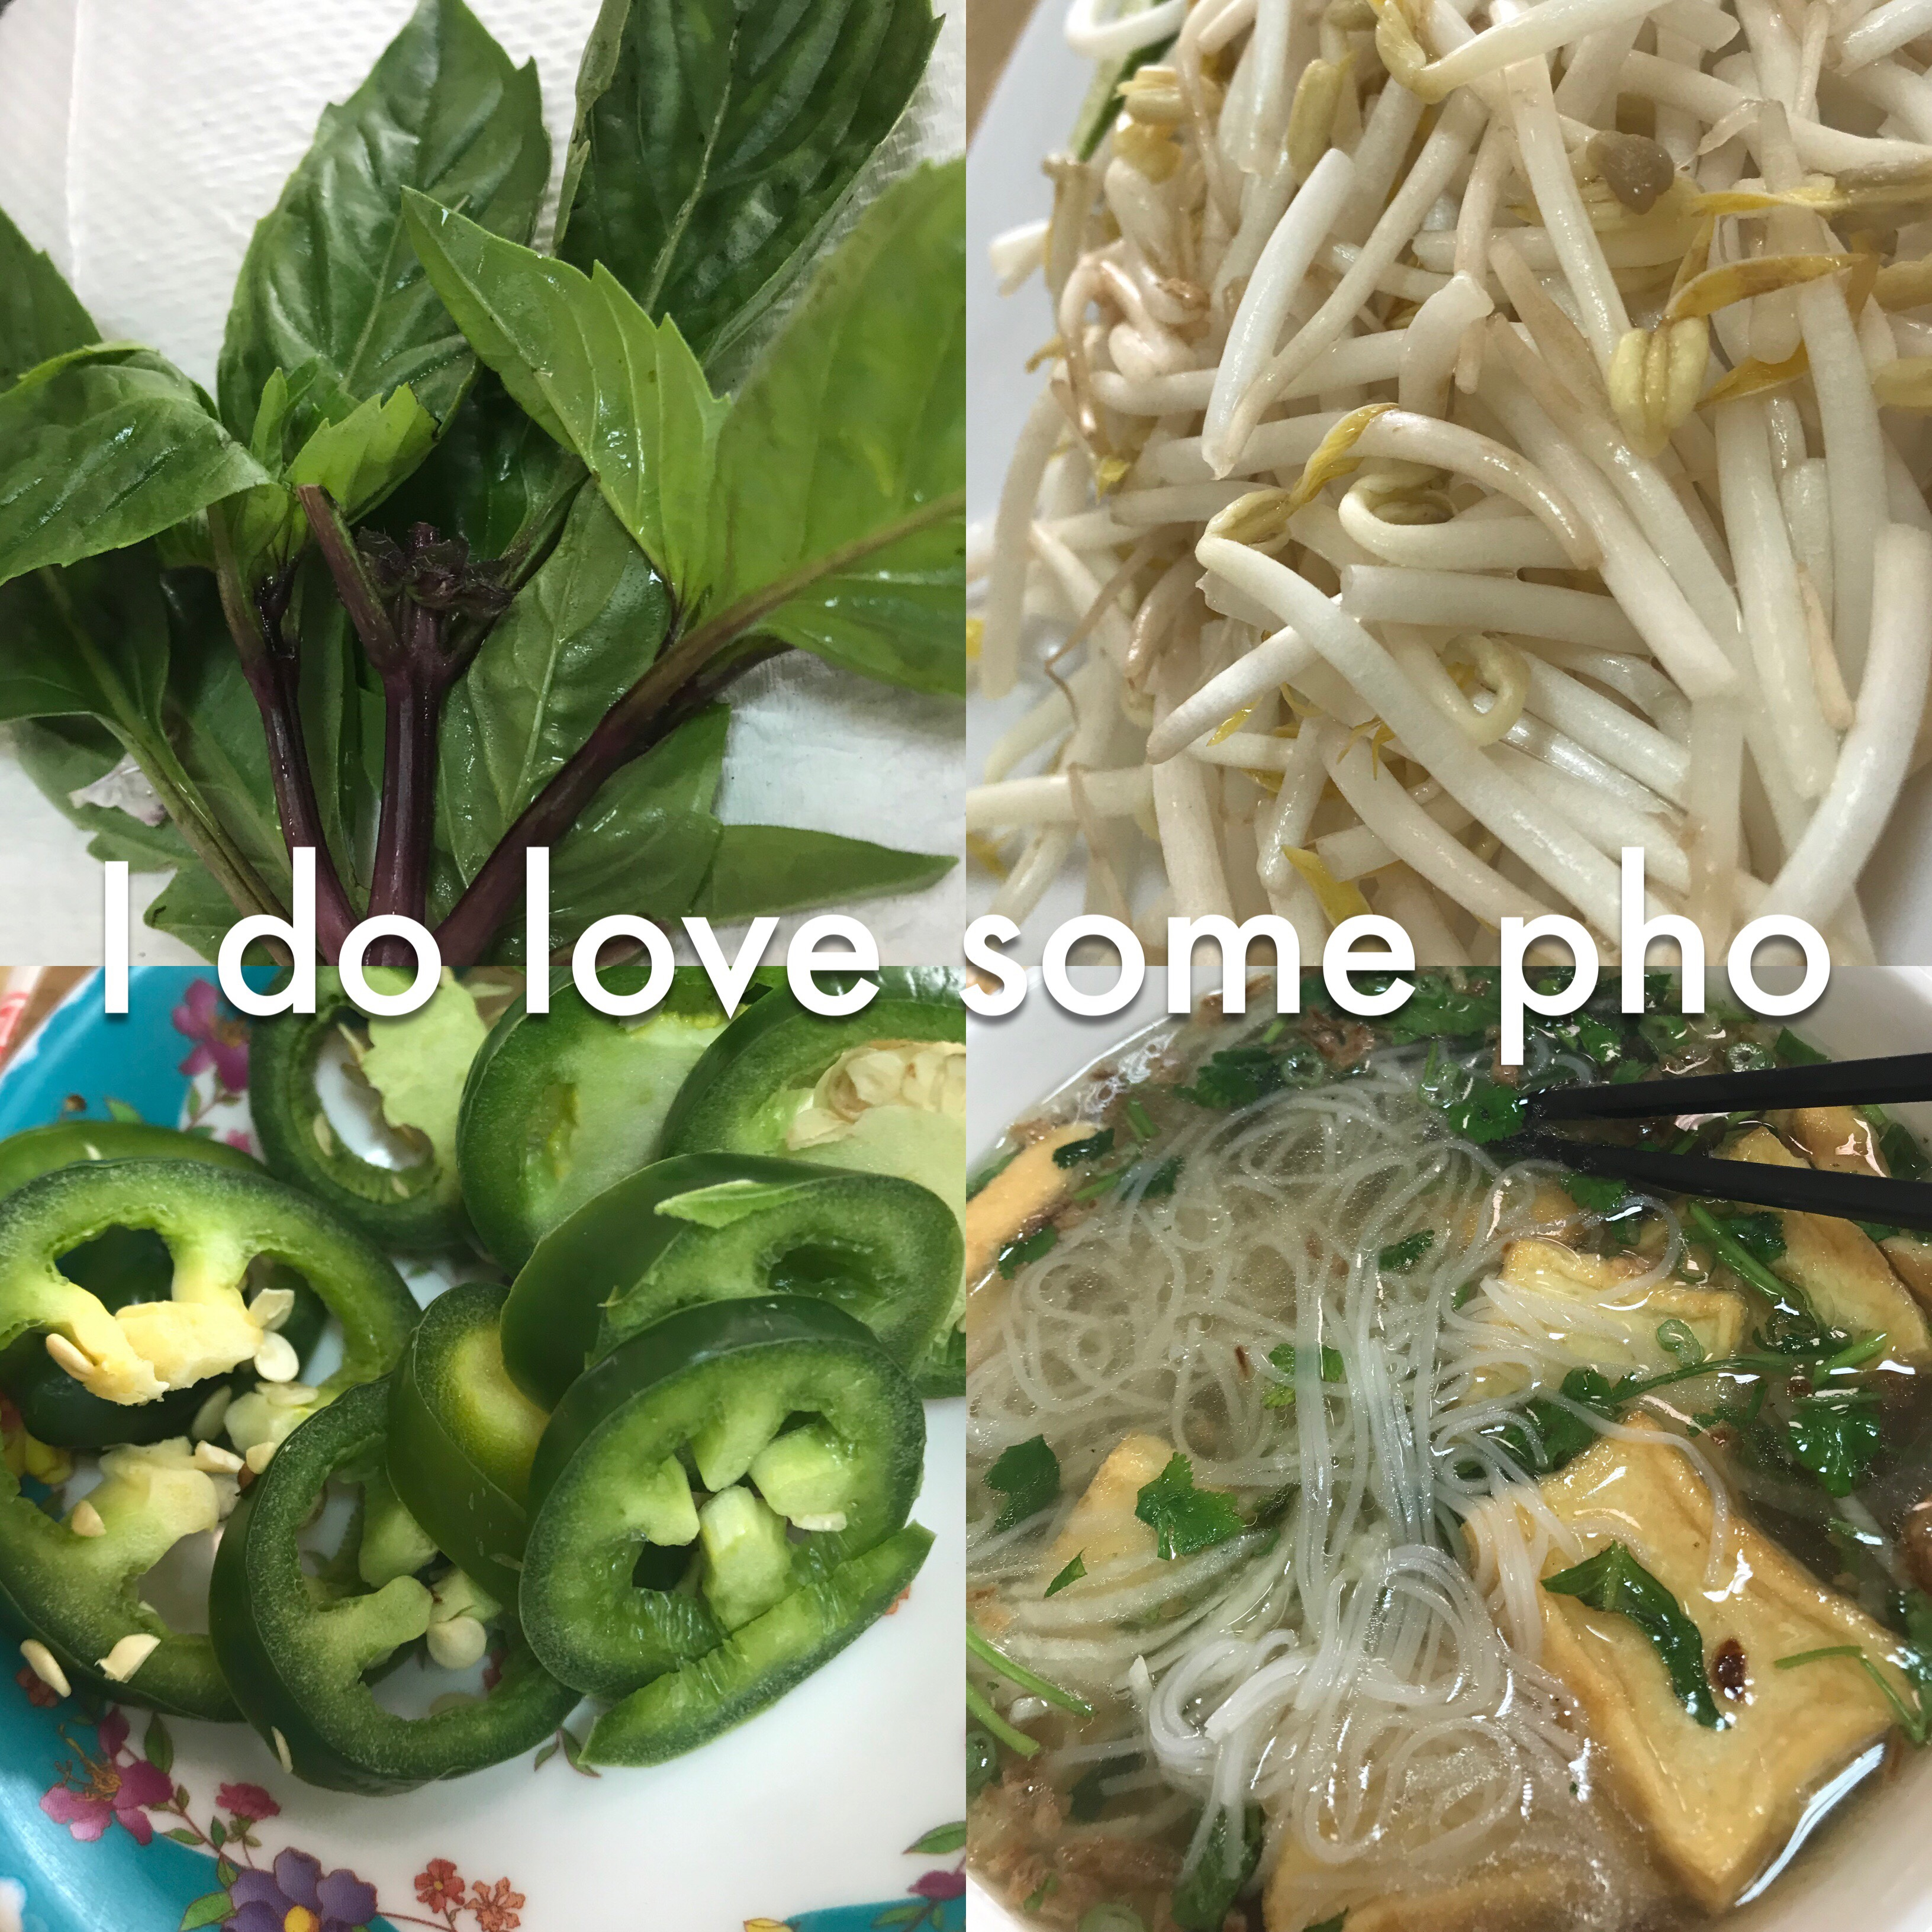 Pho and garnishes